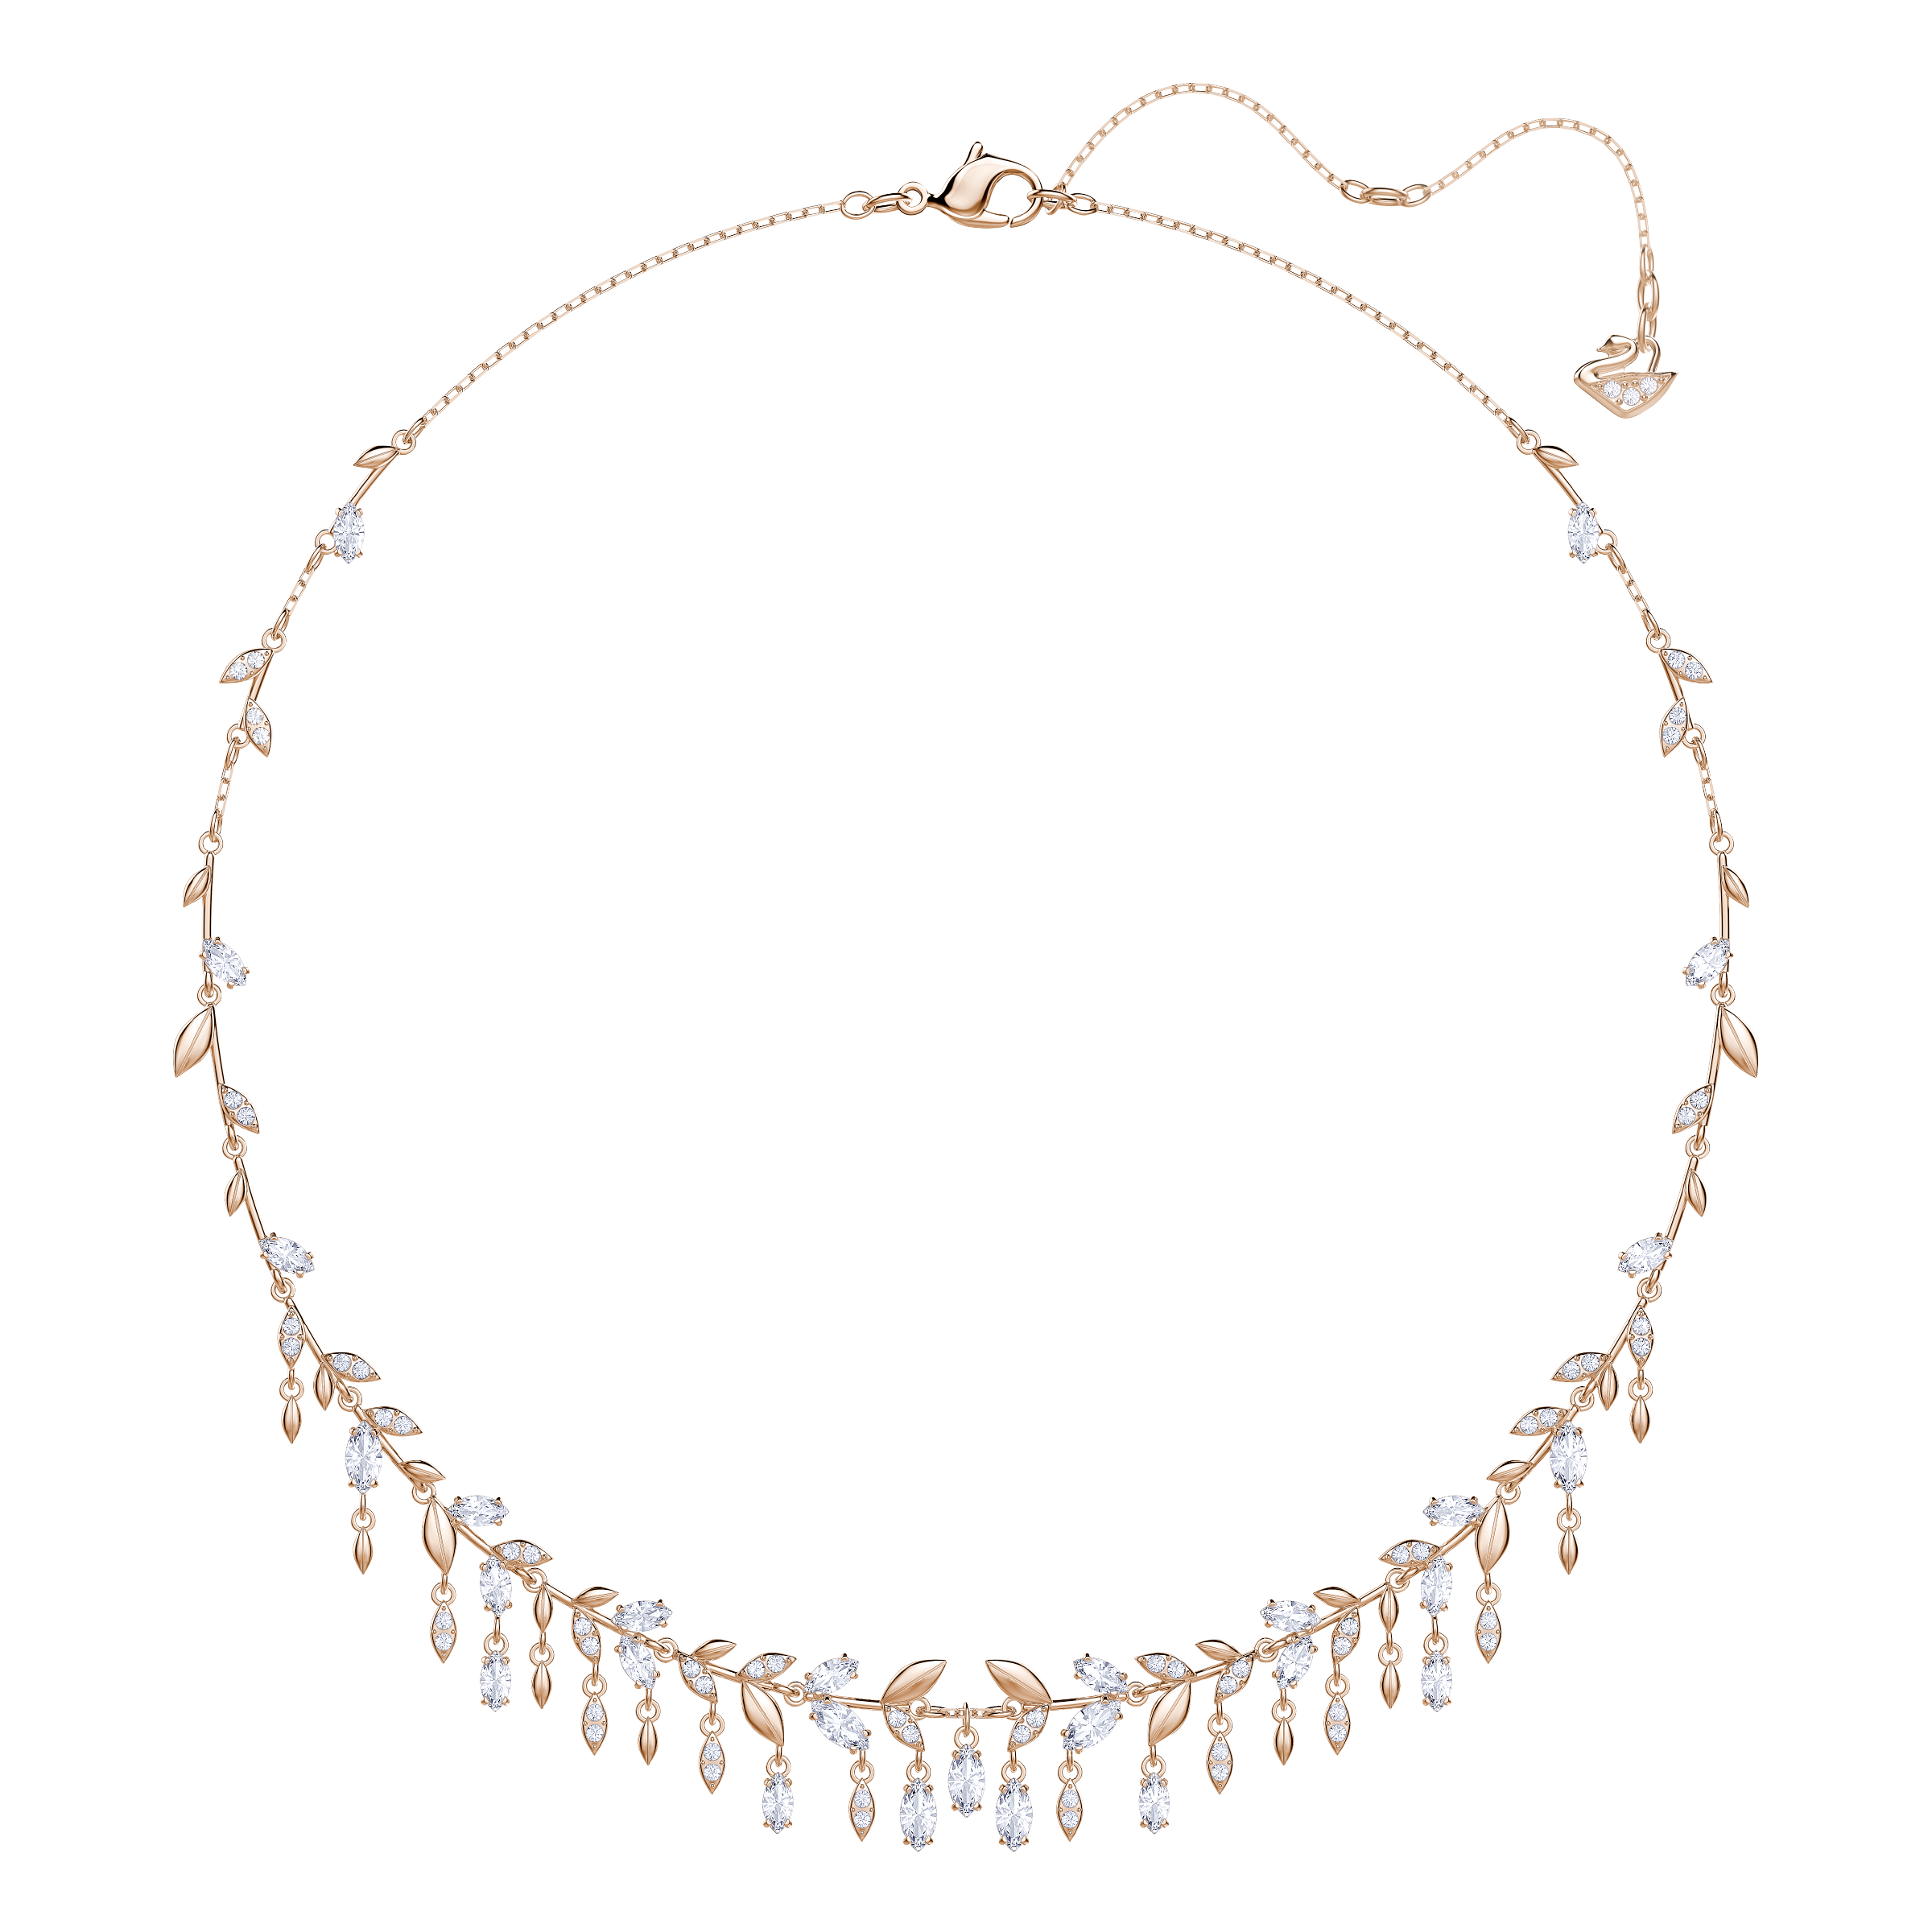 Mayfly Necklace, Large, White, Rose Gold Plating